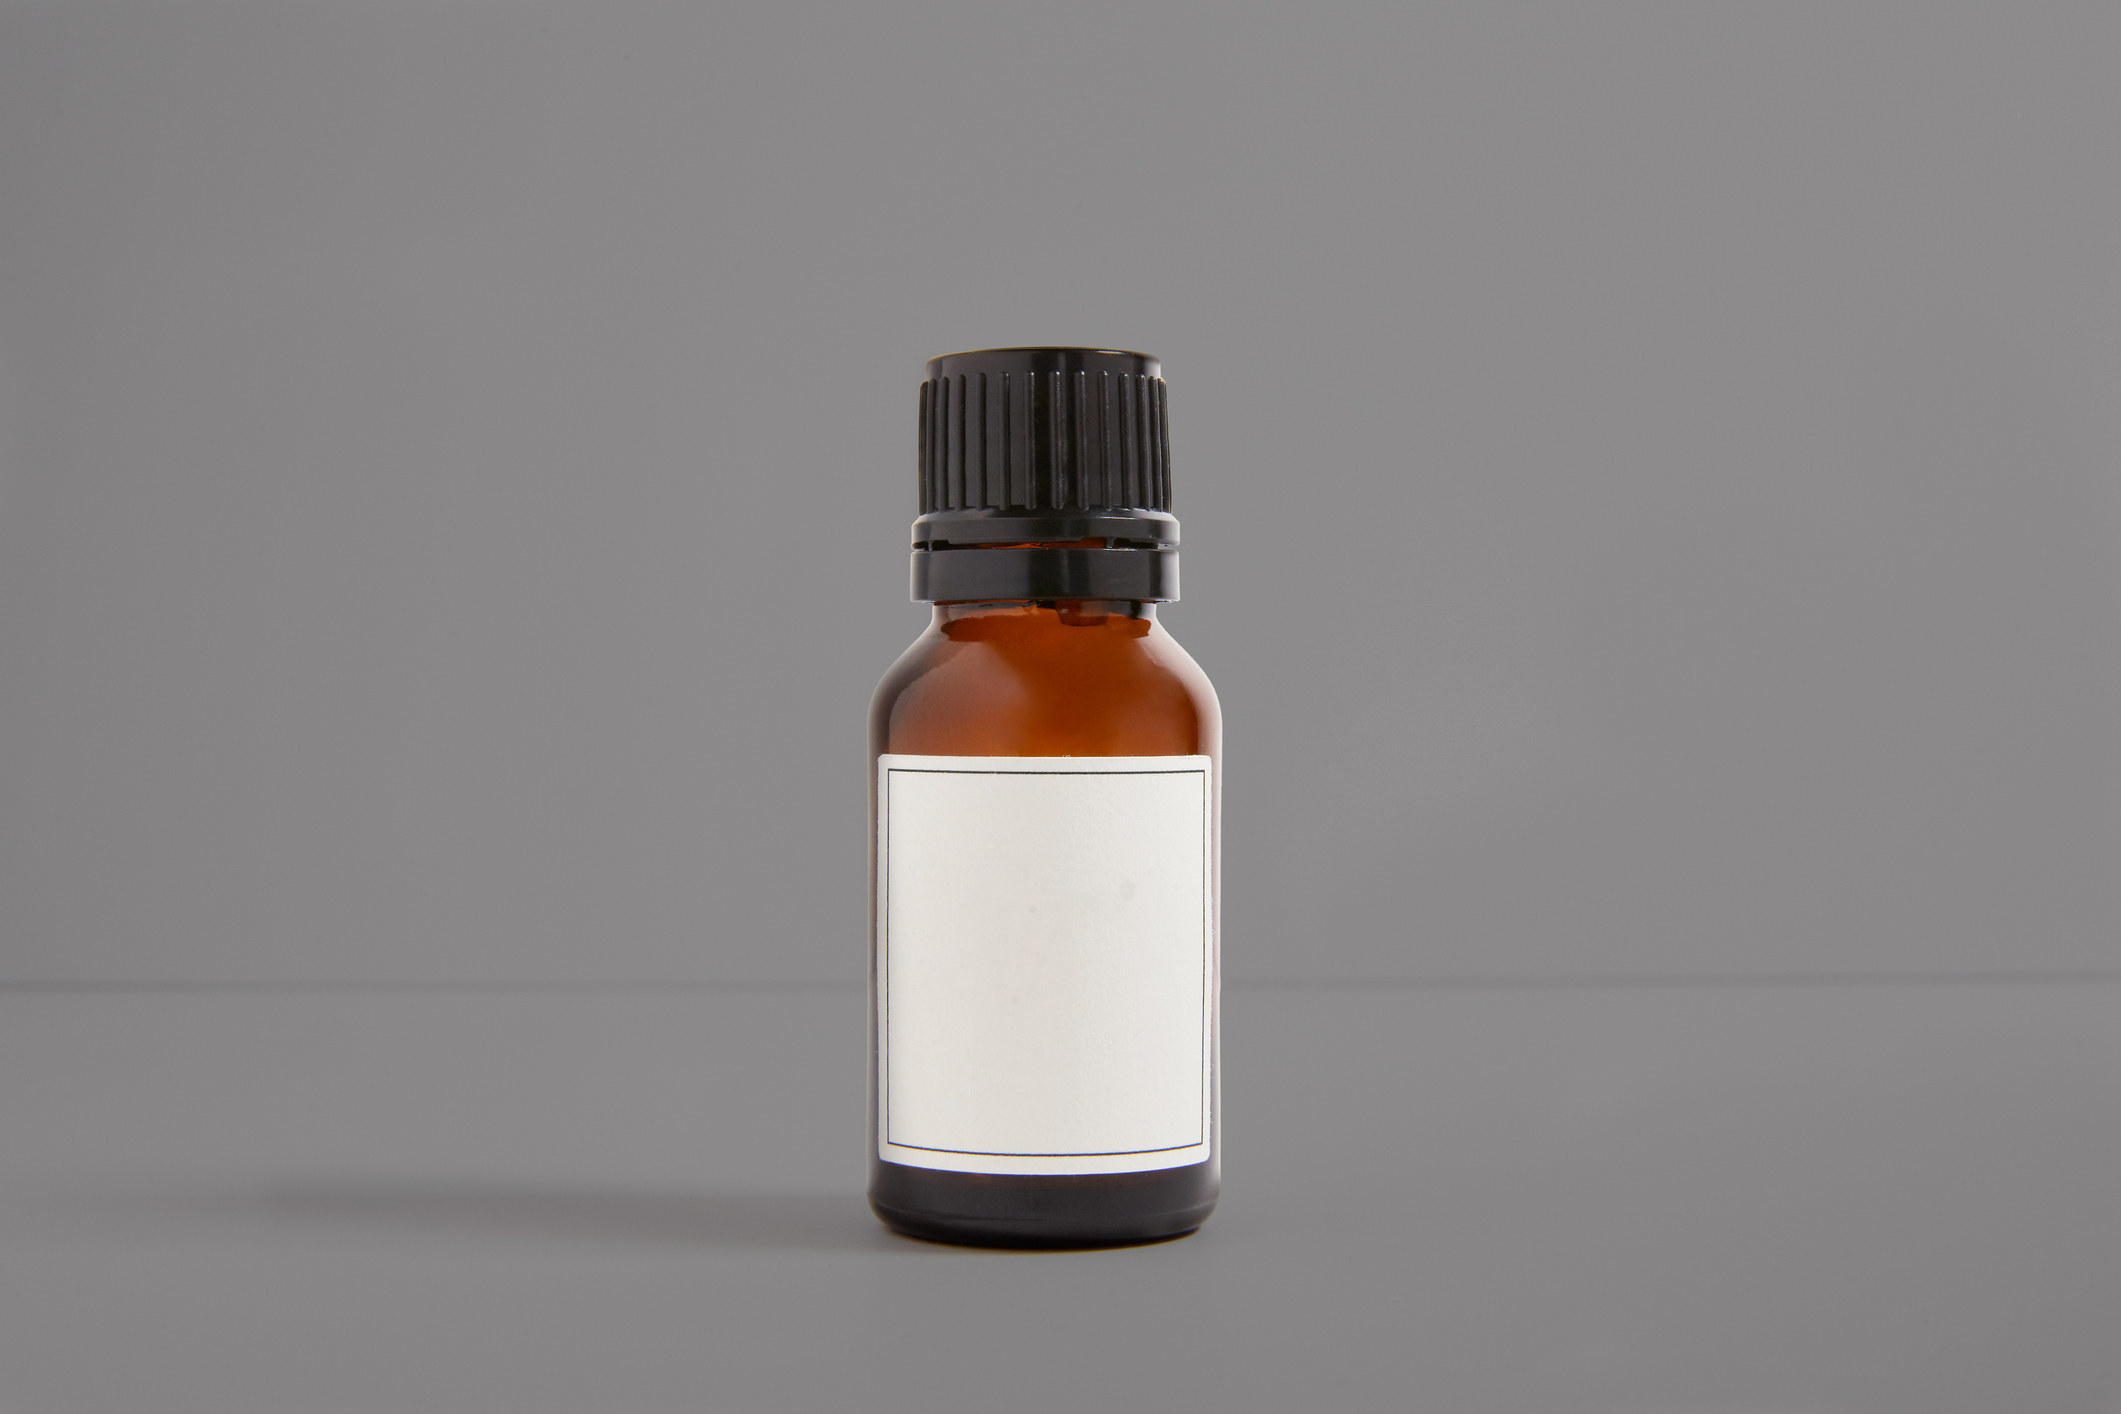 Small brown bottle with black plastic screw on top with white label sits alone on a gray field